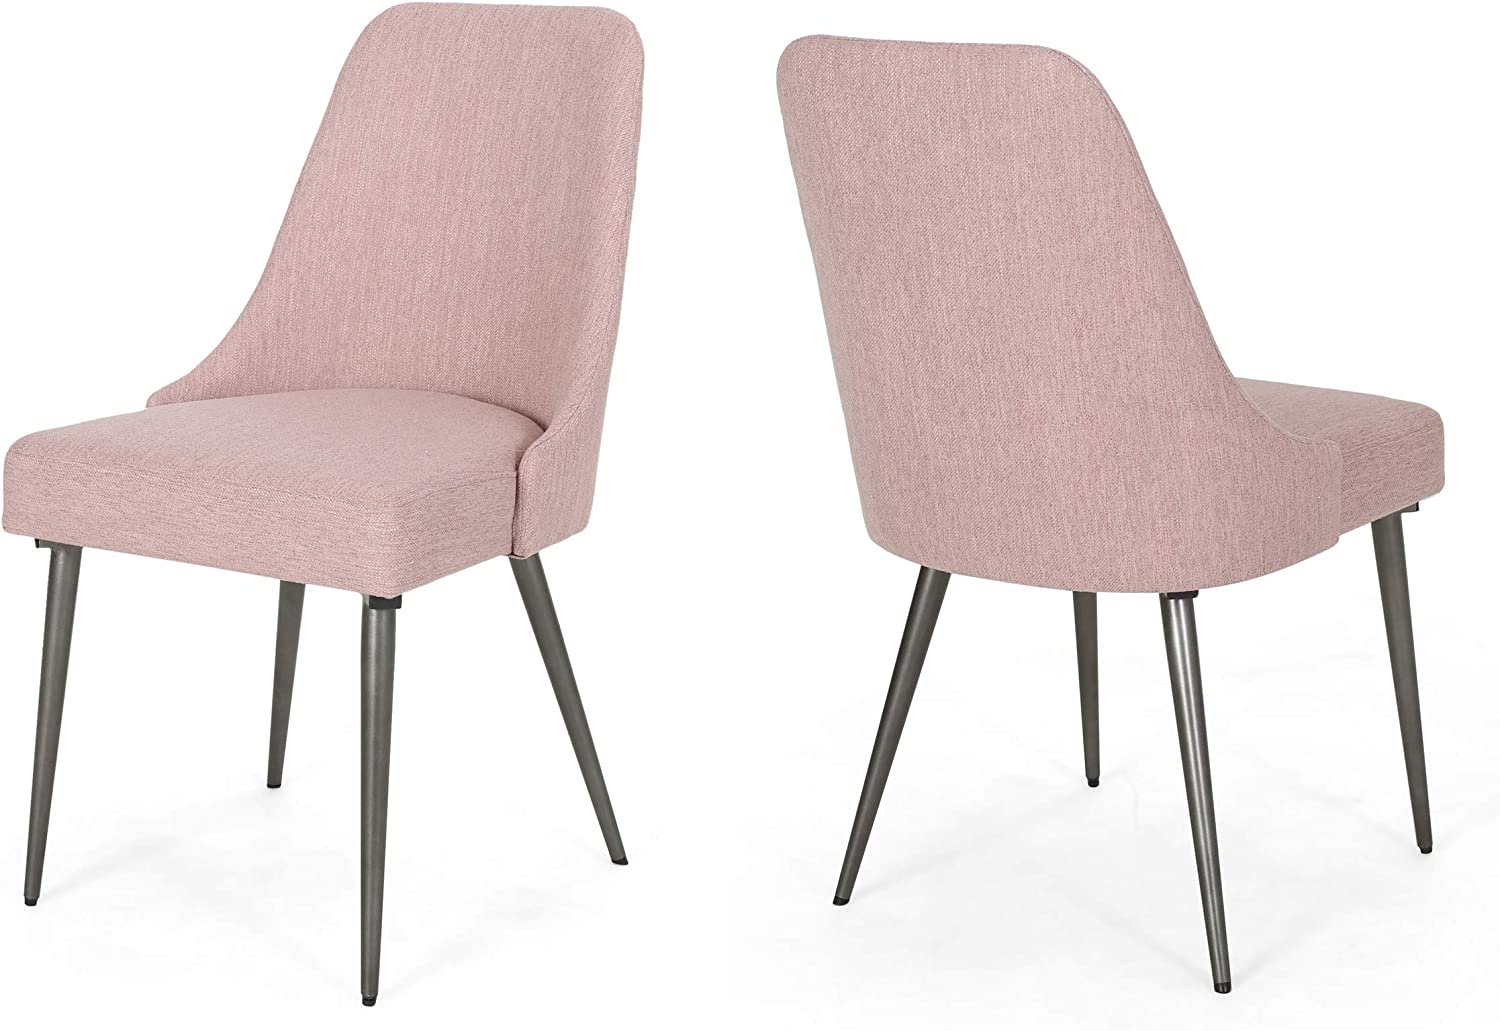 Christopher Knight Home 308238 Dawn Modern Fabric Dining Chairs (Set of 2), Light Blush